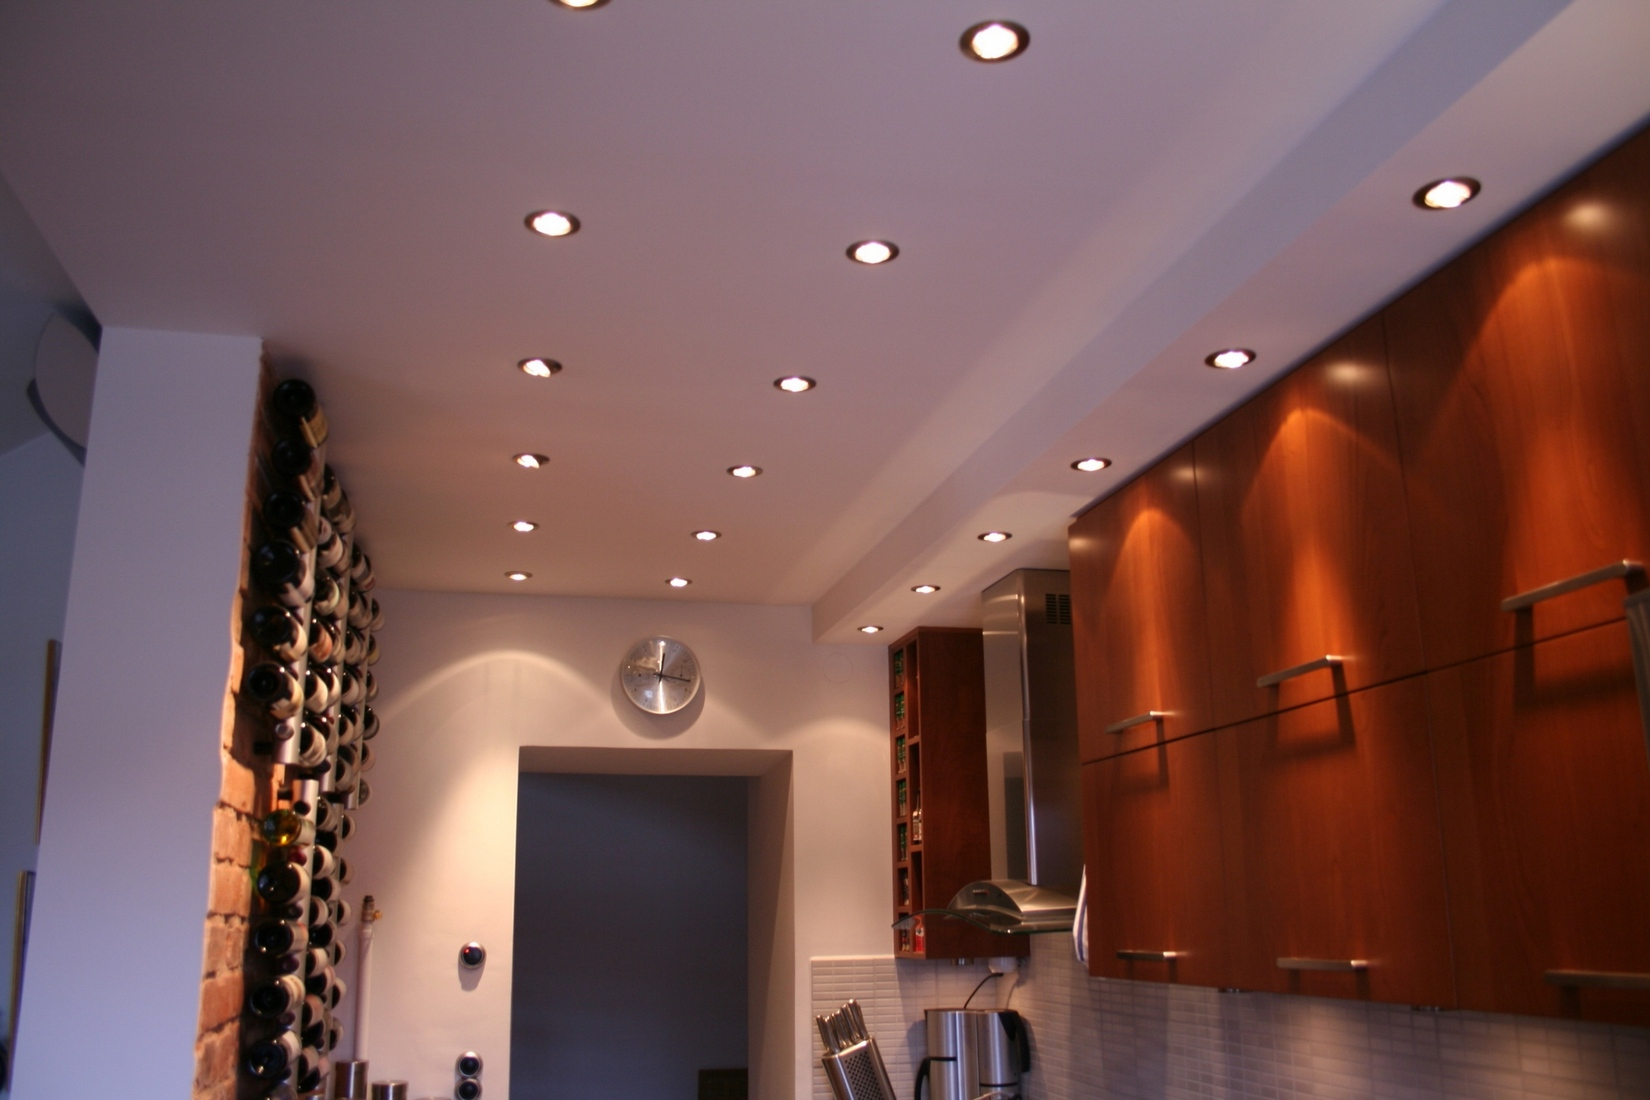 Styles innovations features of recessed lights recessed lights with colored trims mozeypictures Images